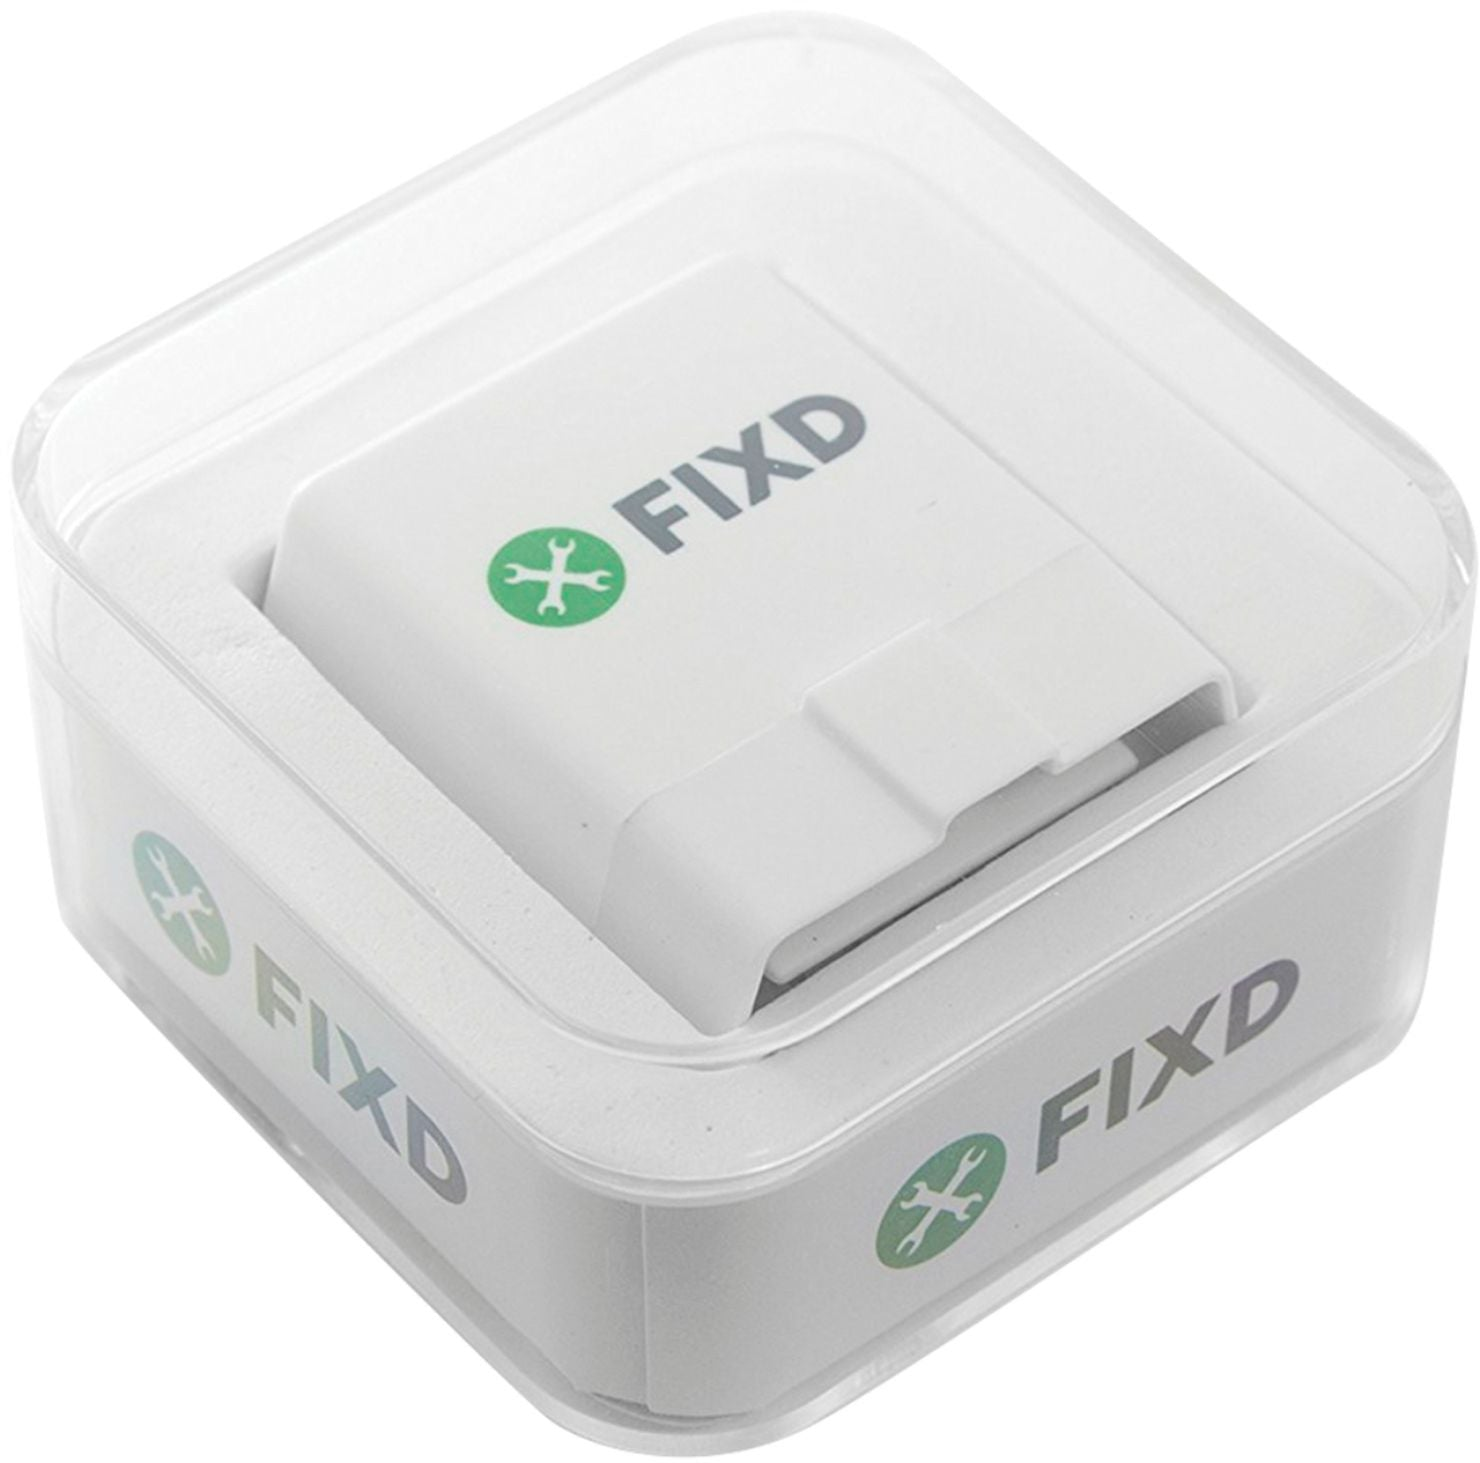 FIXD Vehicle Health Monitor - White